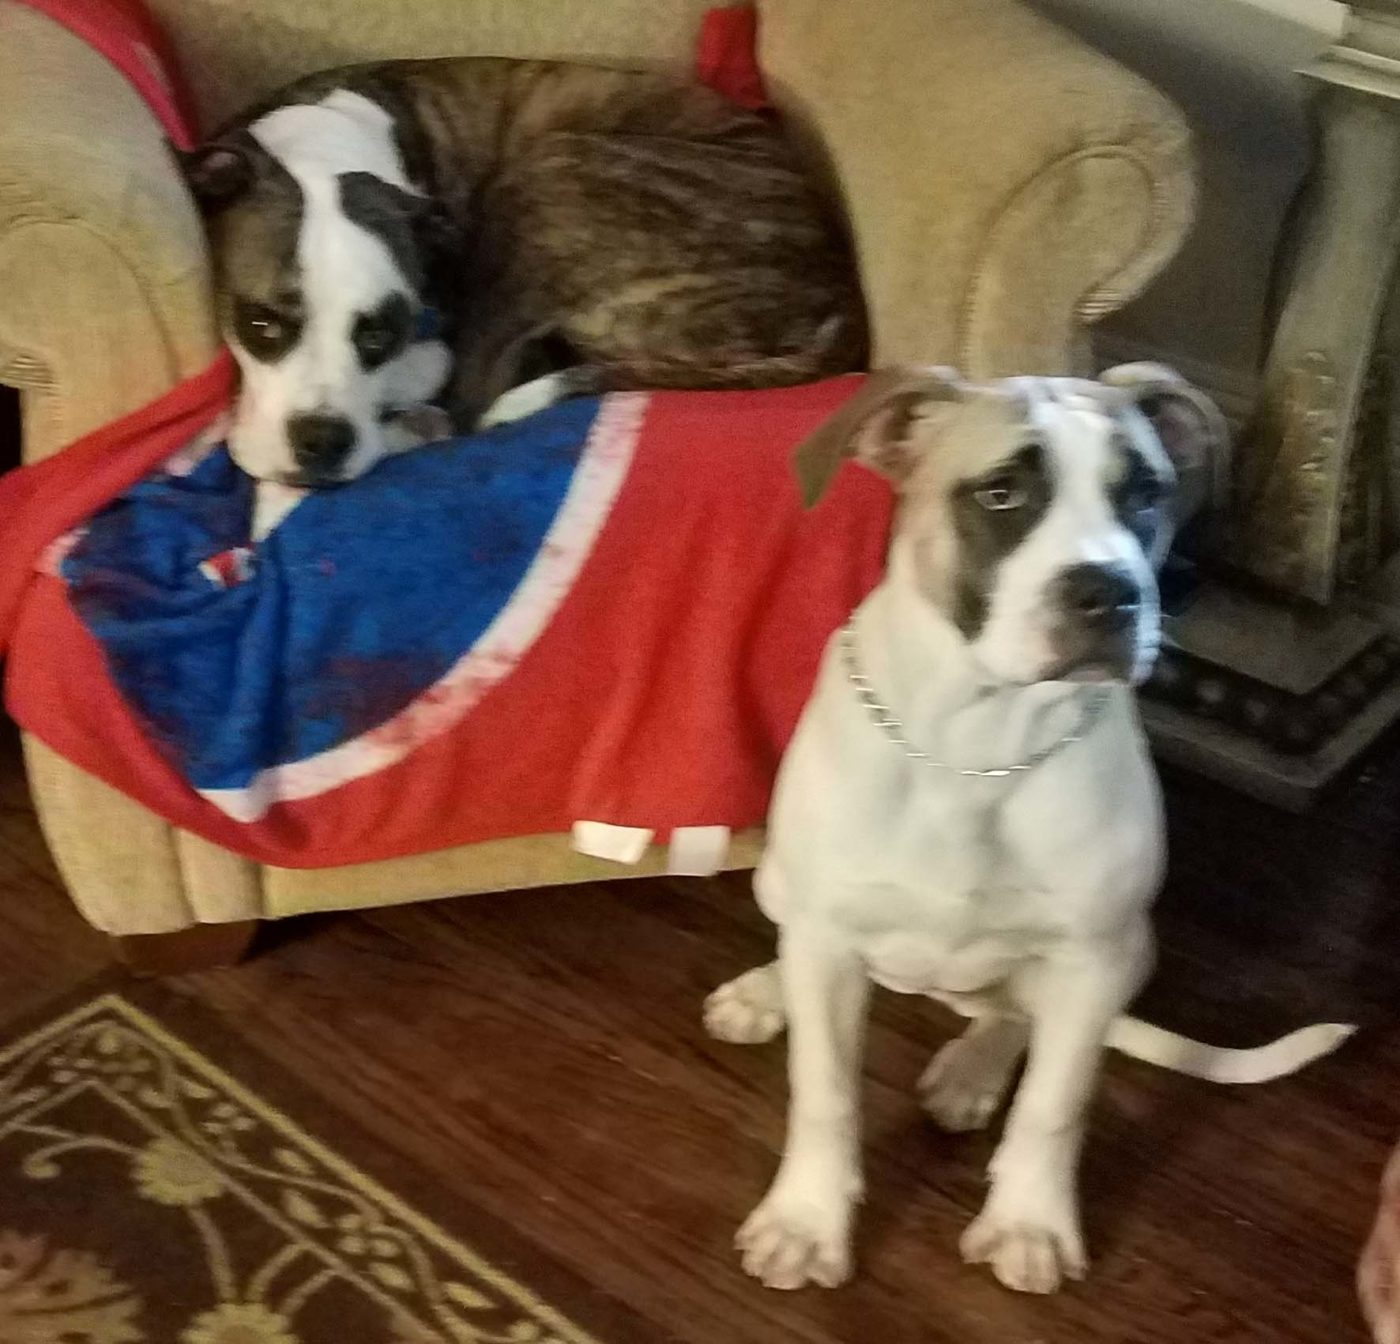 #americanbulldog #newsibings #dogtraining #norristown